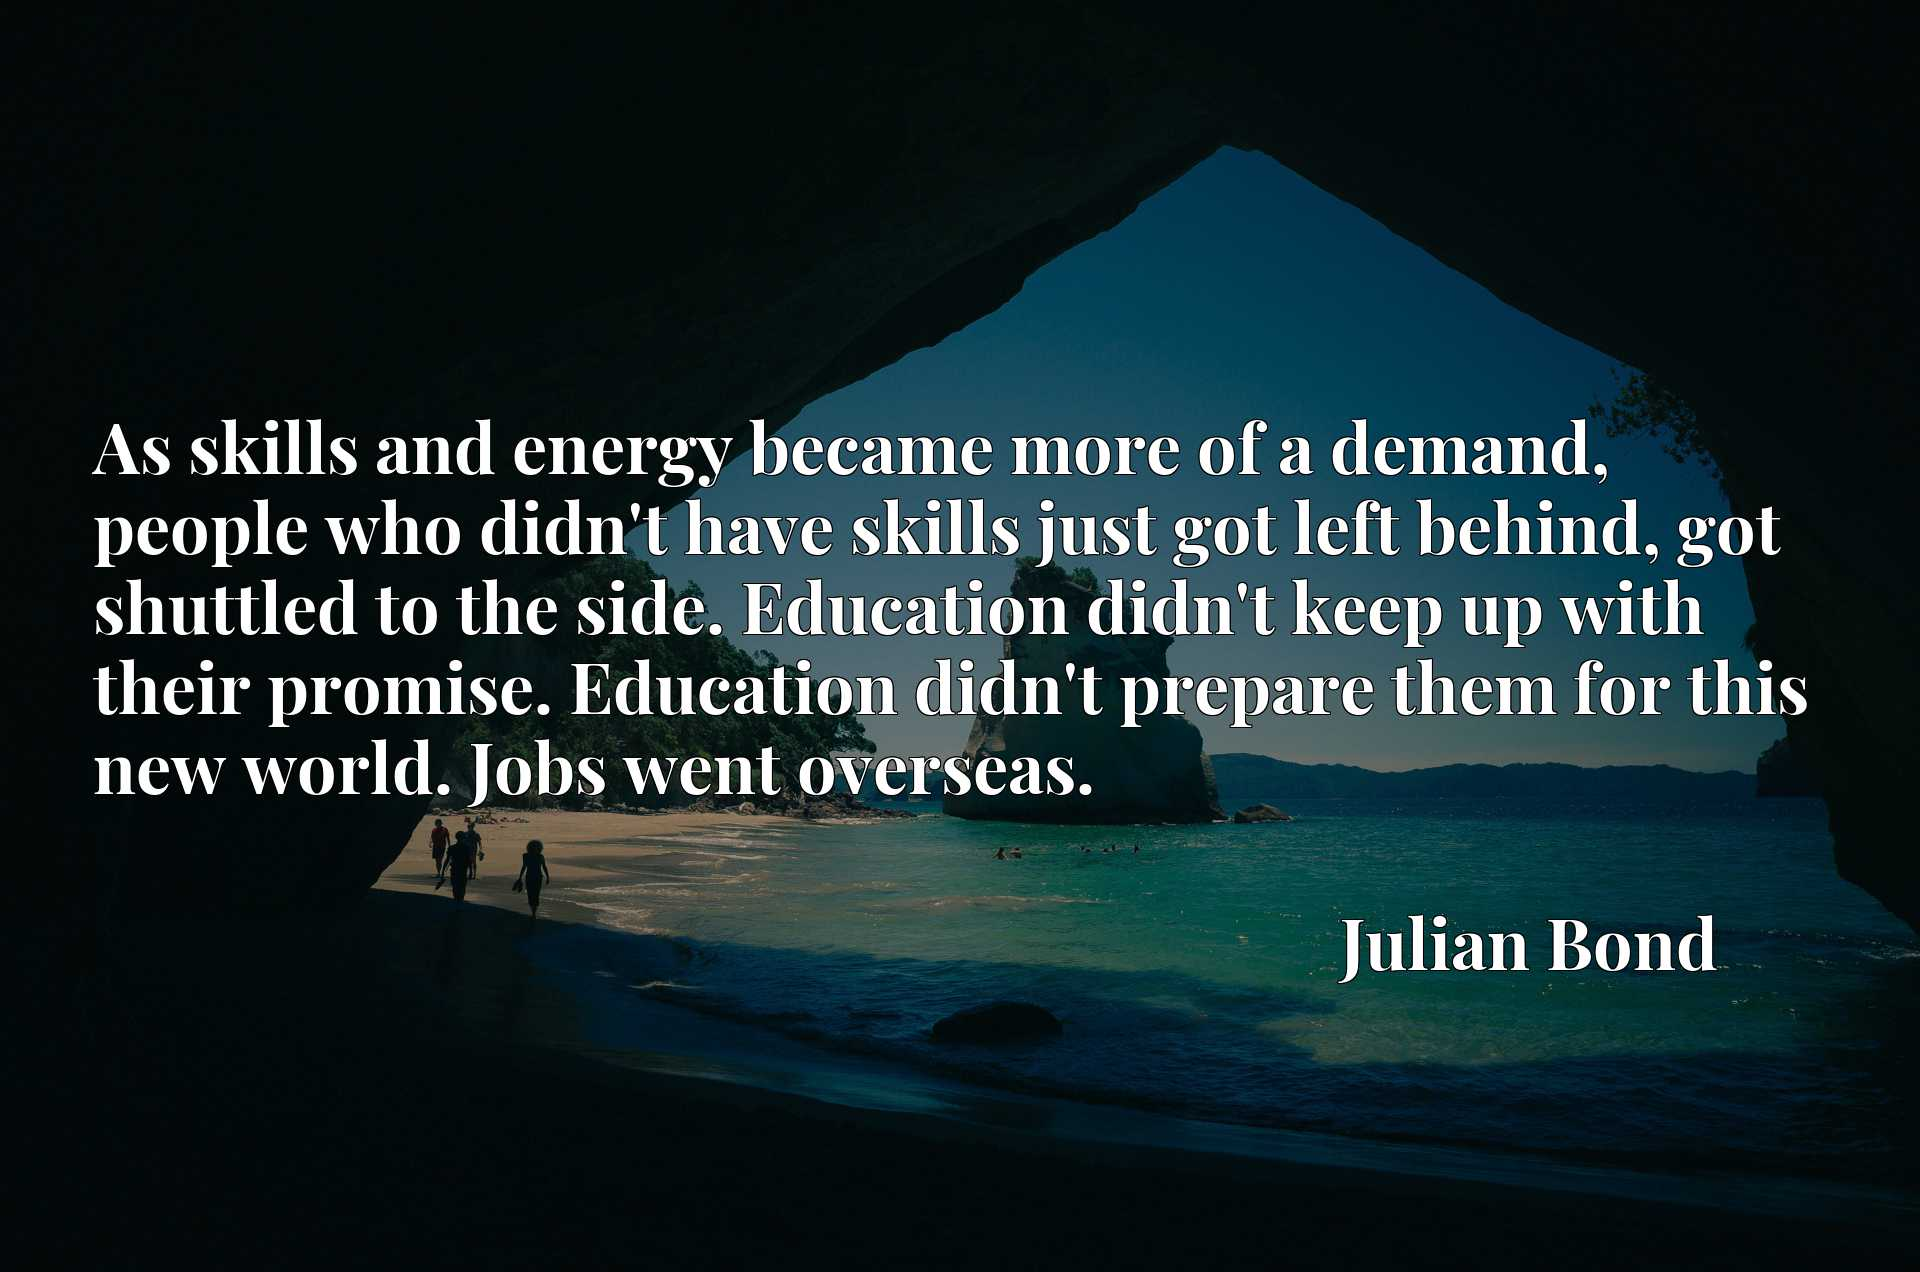 As skills and energy became more of a demand, people who didn't have skills just got left behind, got shuttled to the side. Education didn't keep up with their promise. Education didn't prepare them for this new world. Jobs went overseas.